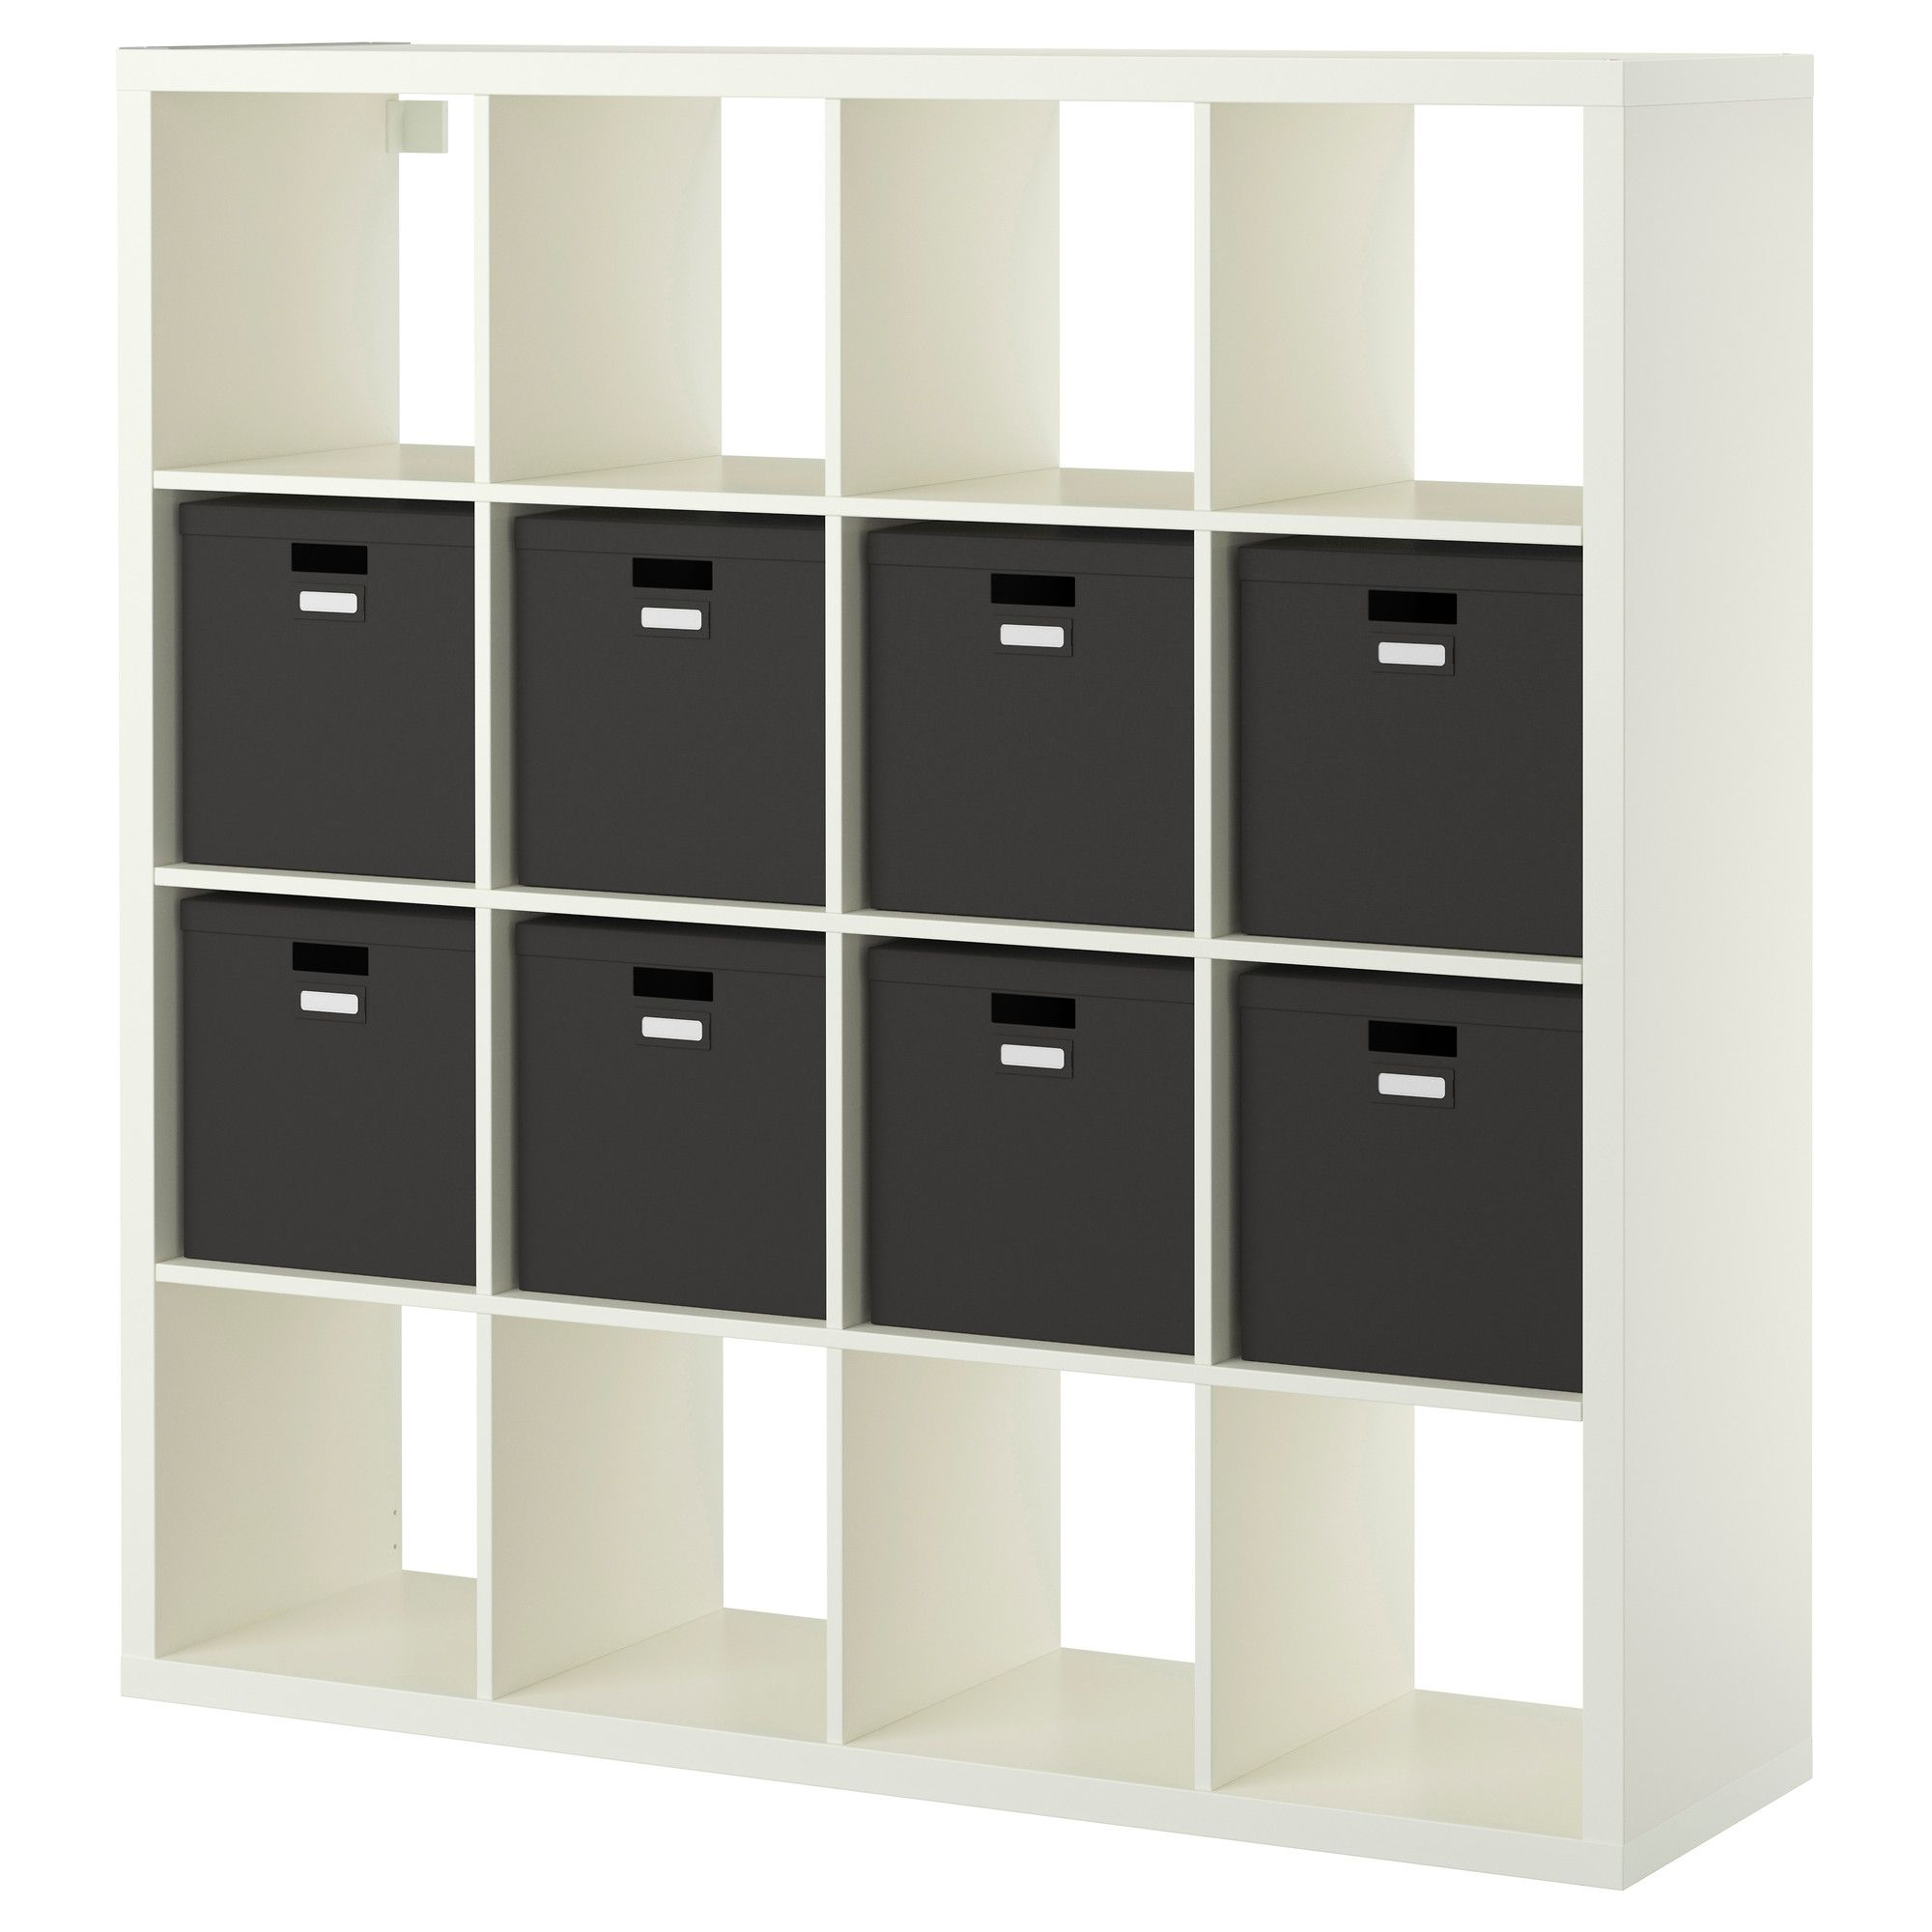 Ikea Kallax Tjena Shelf Unit With 8 Inserts White  # Etagere Ikea Kallax